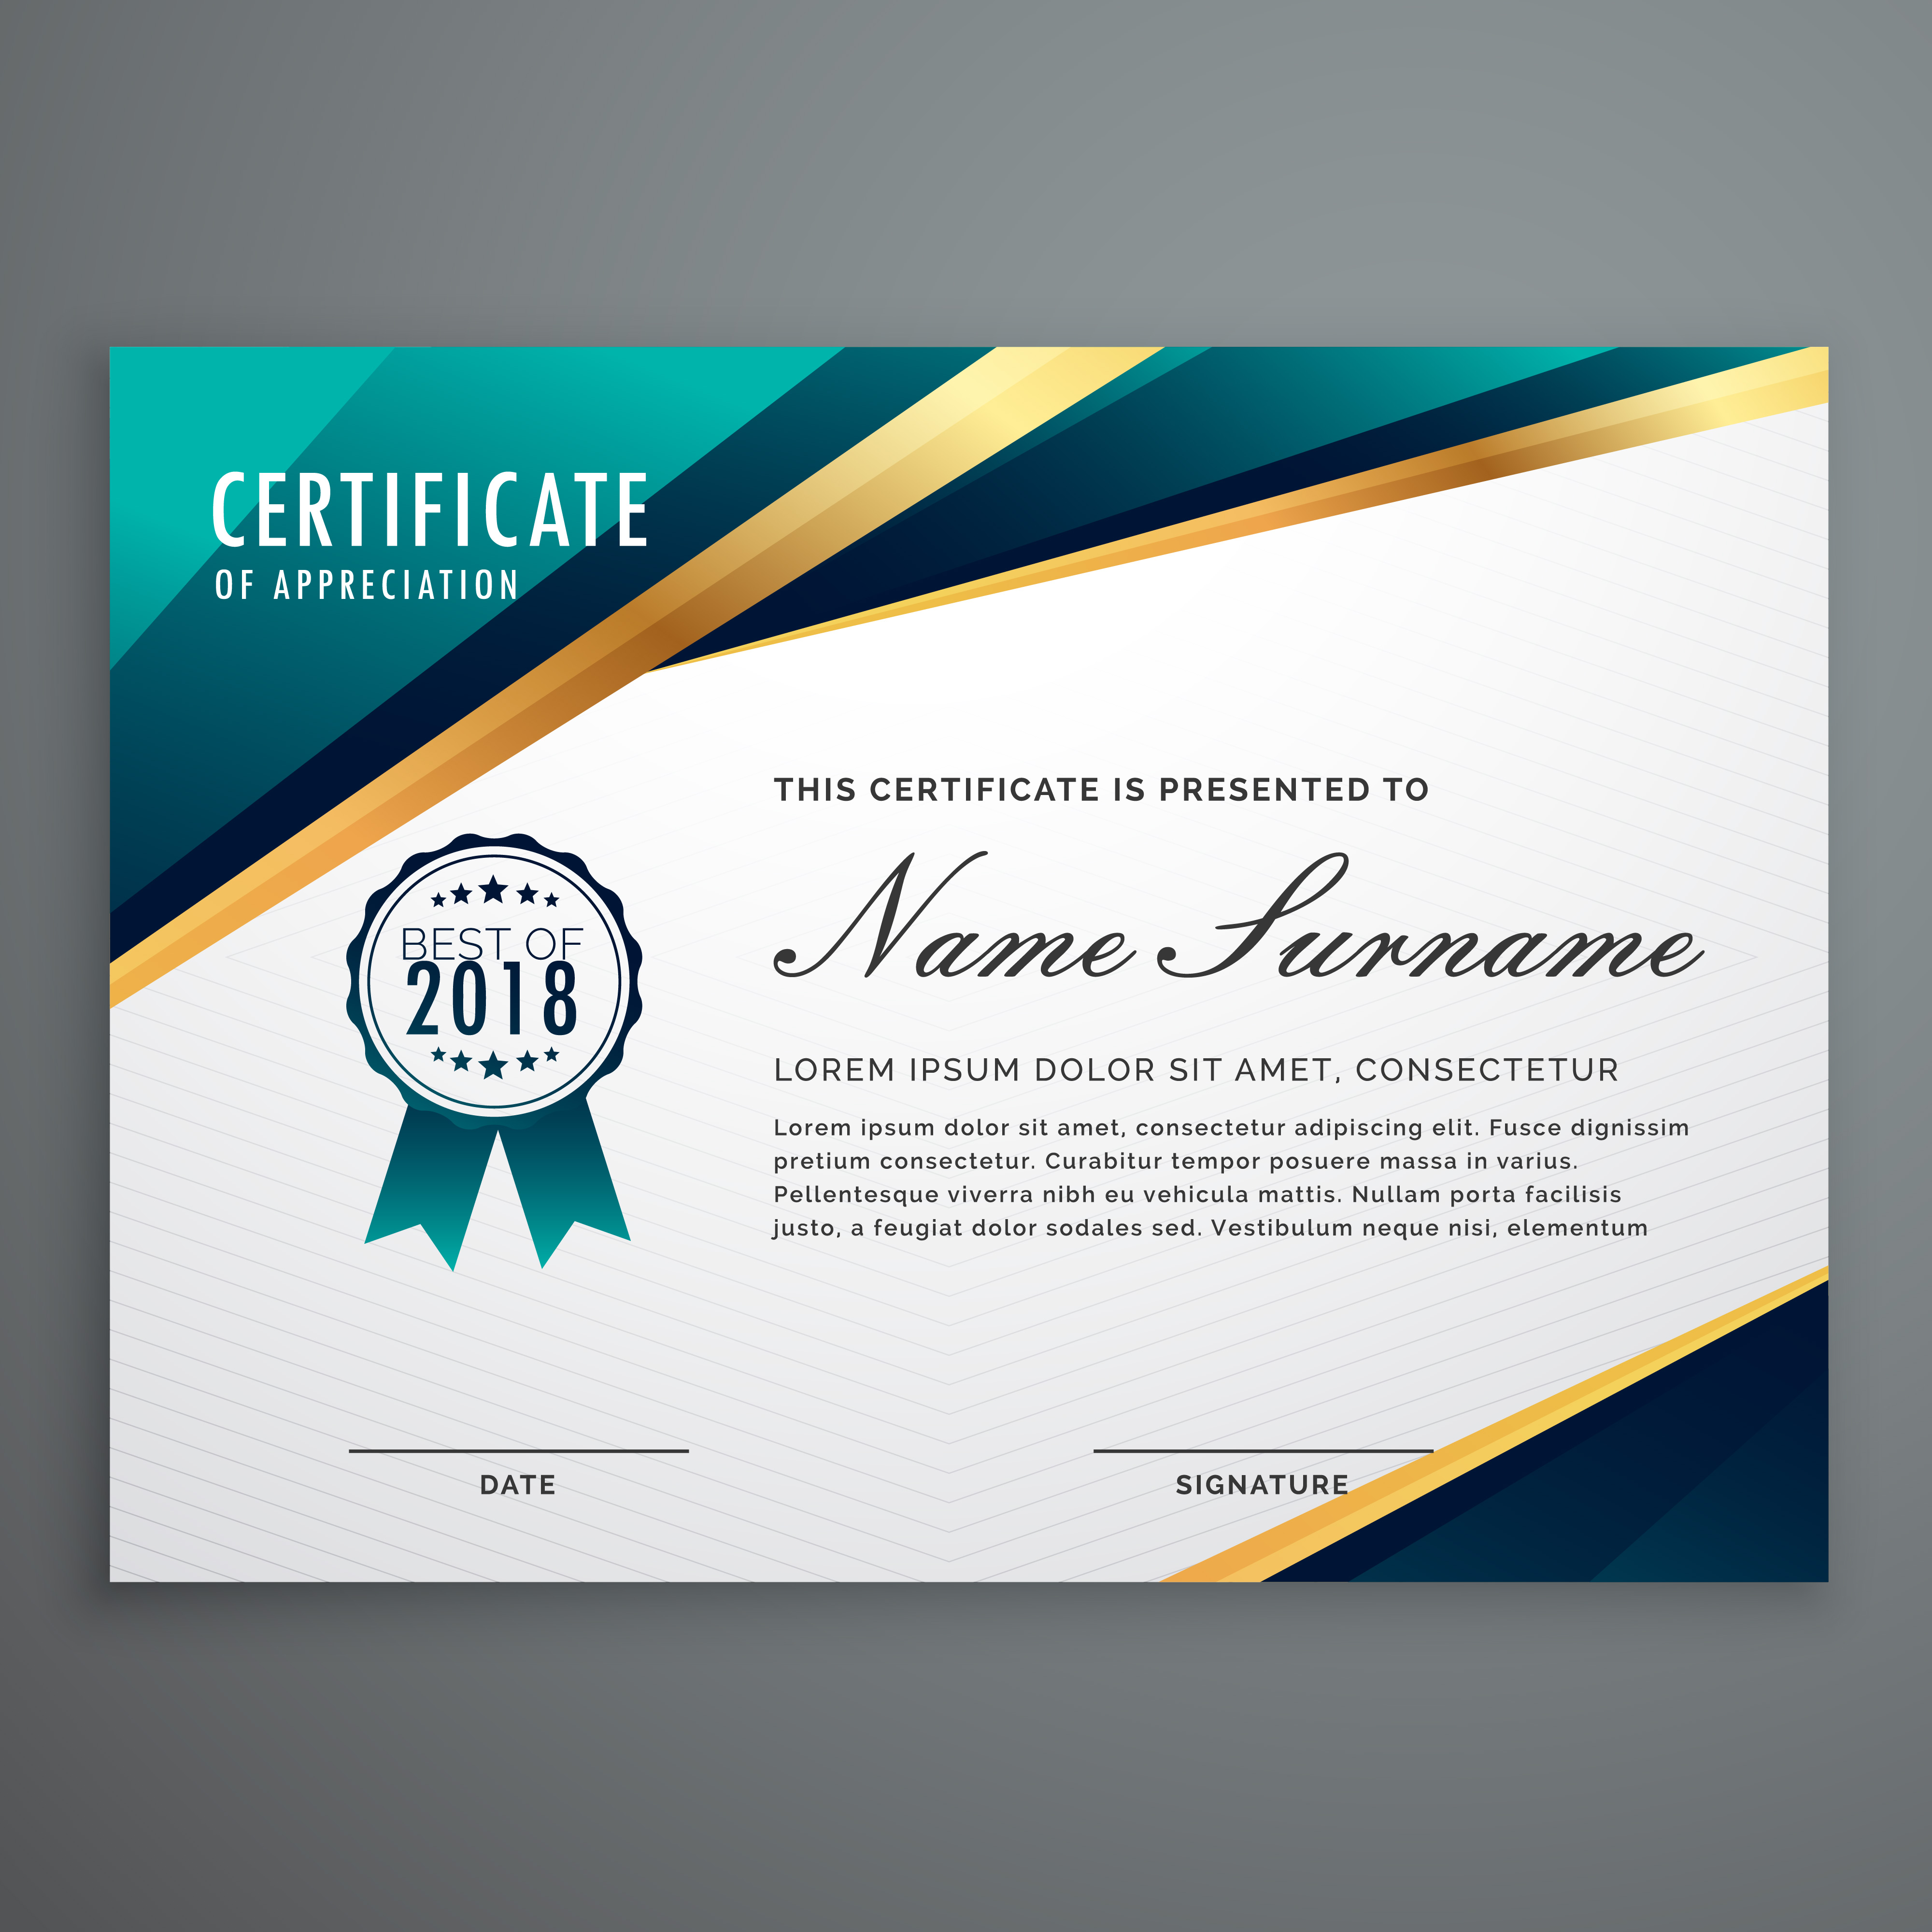 Certificate Design With Luxury Golden Shapes. Diploma